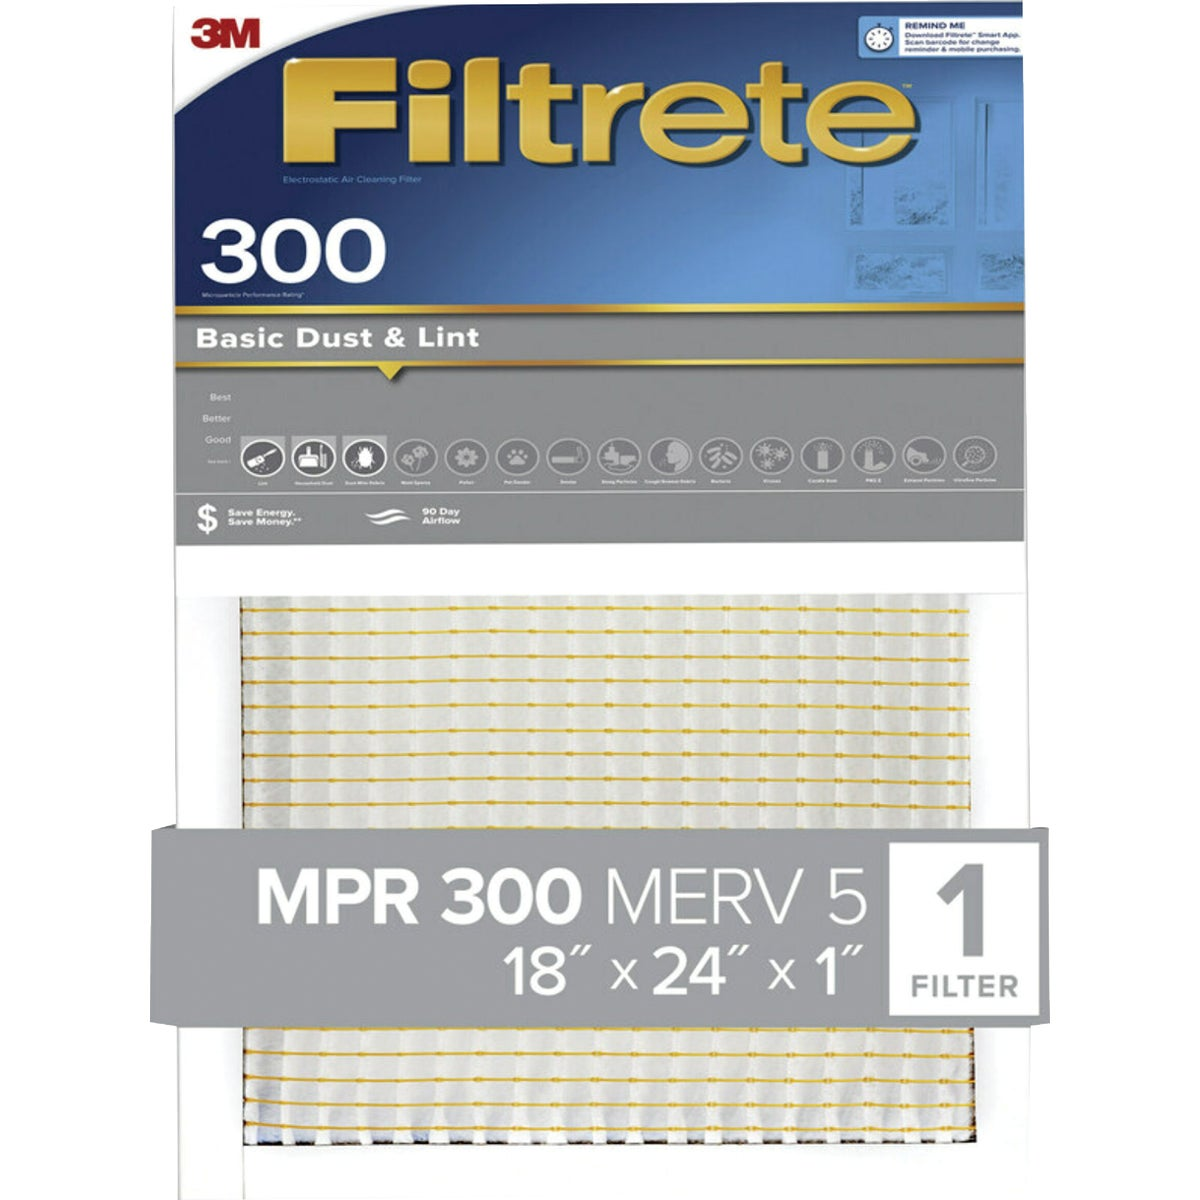 20X25X1 DUST RDCT FILTER - 303DC-6 by 3m Co